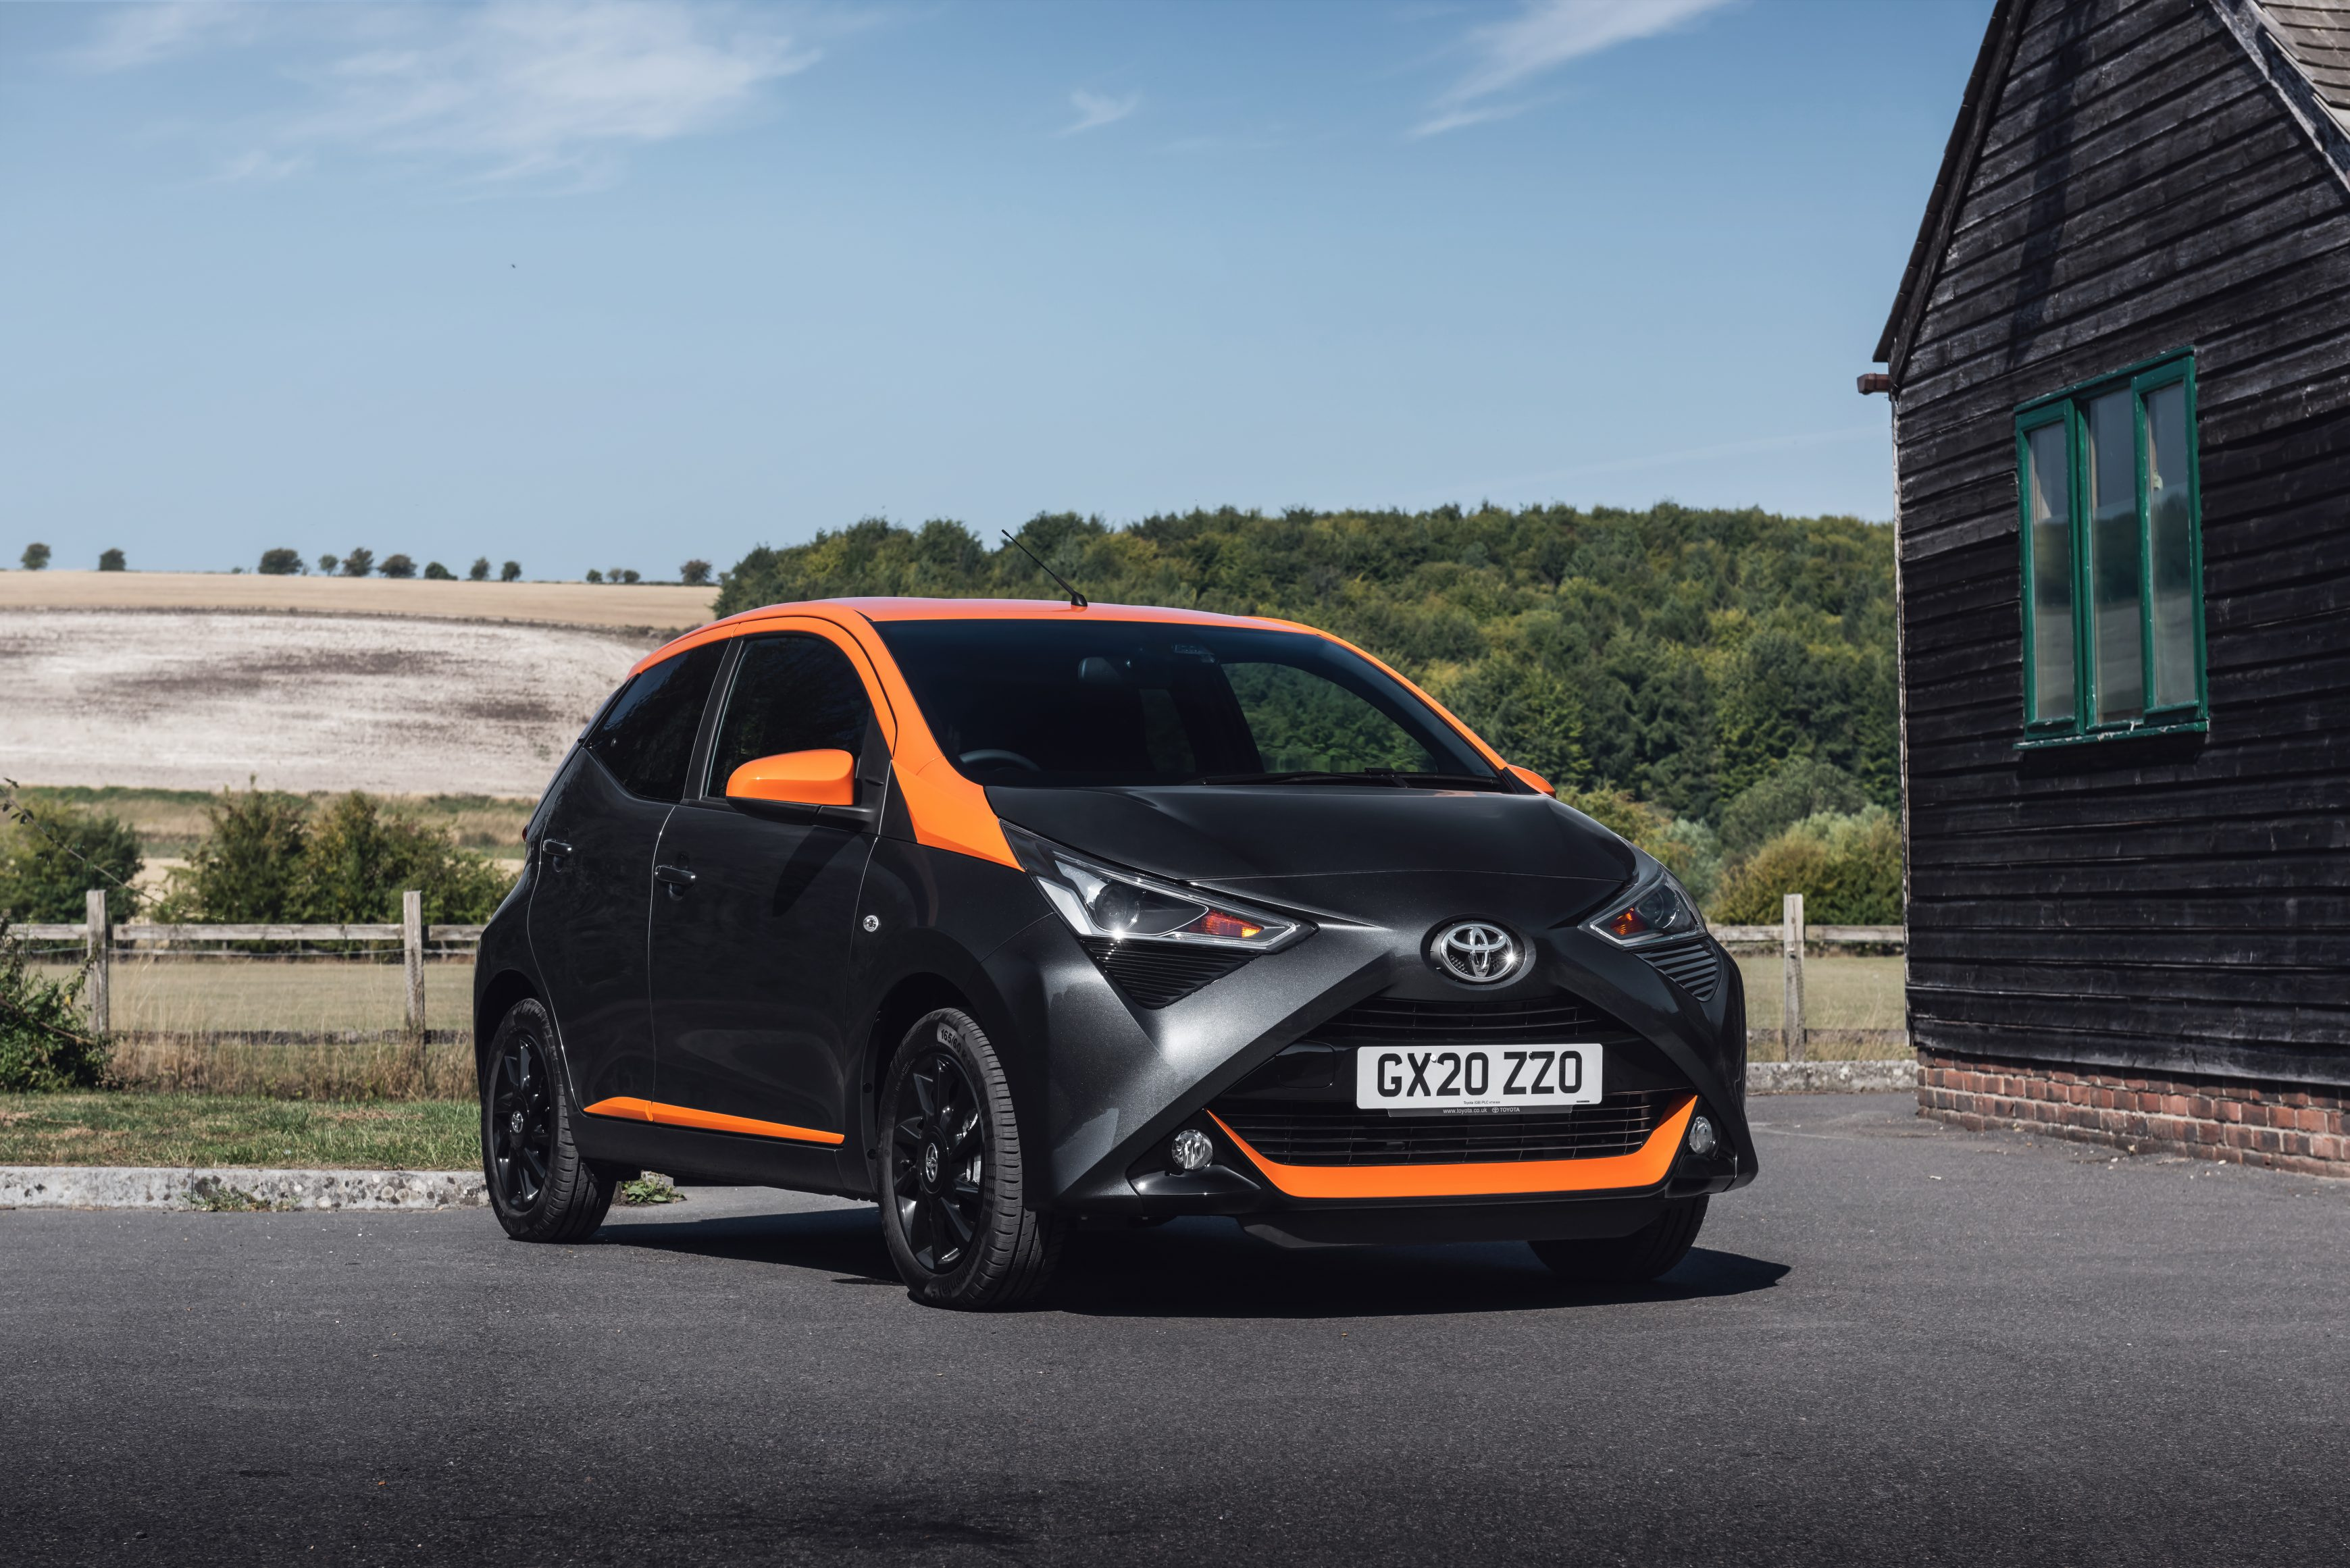 The Toyota Aygo JBL Edition is one of the flashiest models in the range